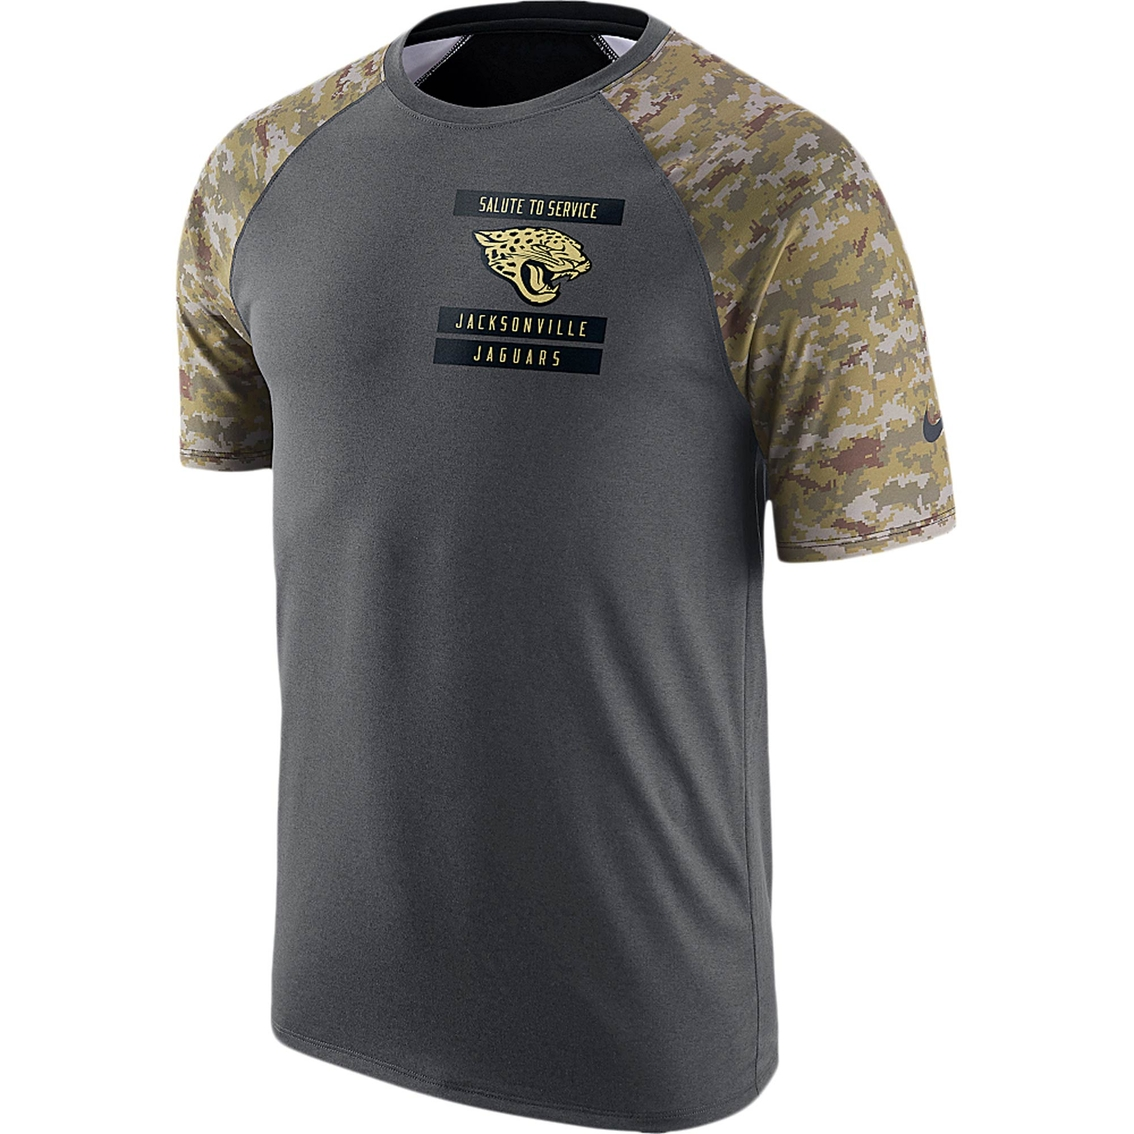 premium selection 93d77 23928 Nike Nfl Jacksonville Jaguars Salute To Service Tee ...